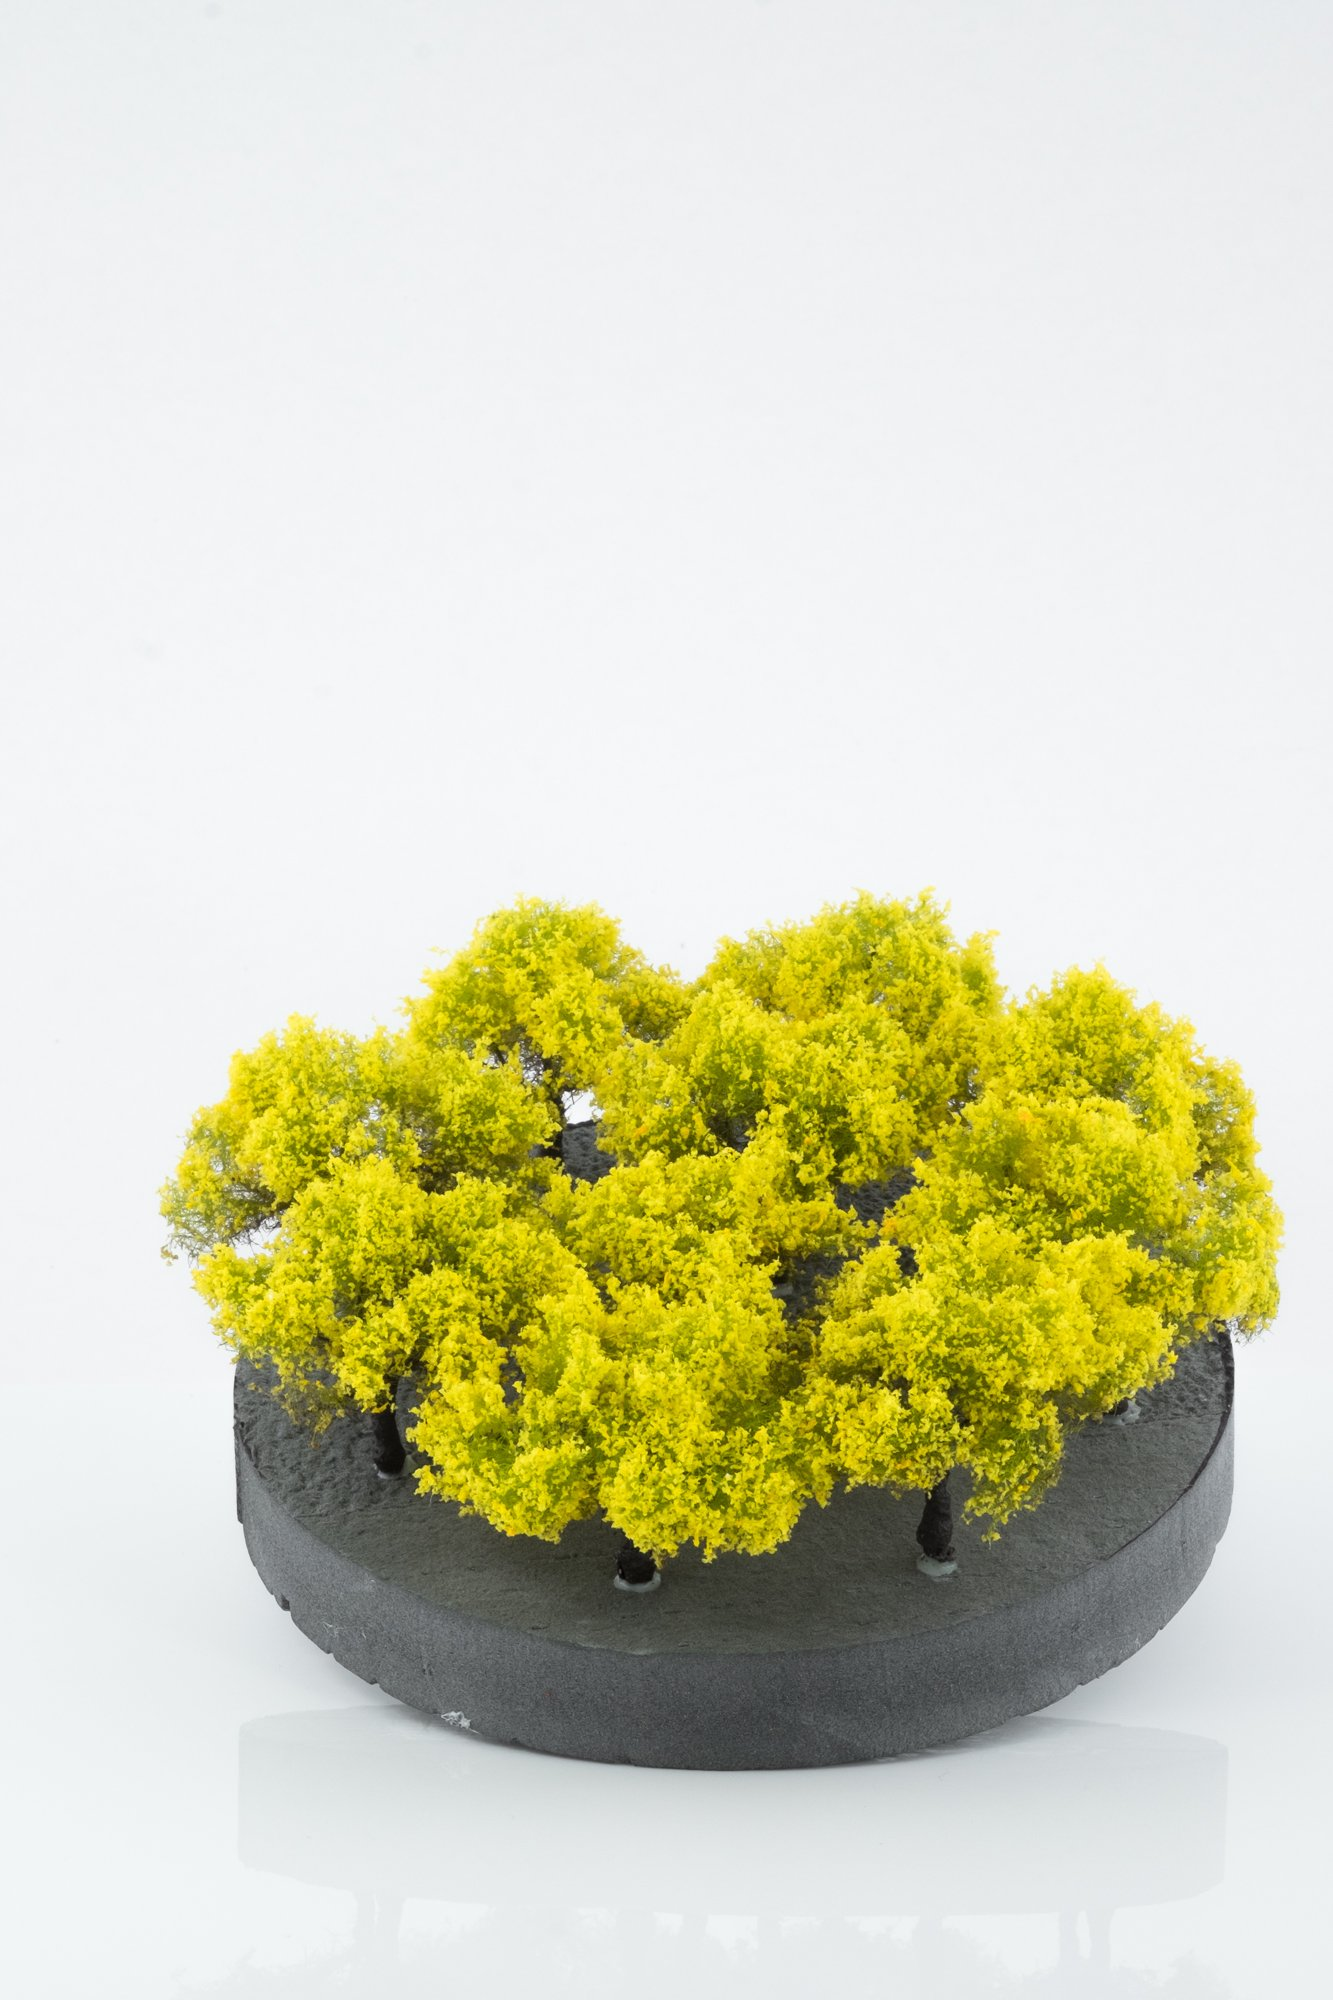 Ten pieces, regular yellow model bushes. Size between 2 and 4 cm. Made from high quality model supplies by Primo Models.